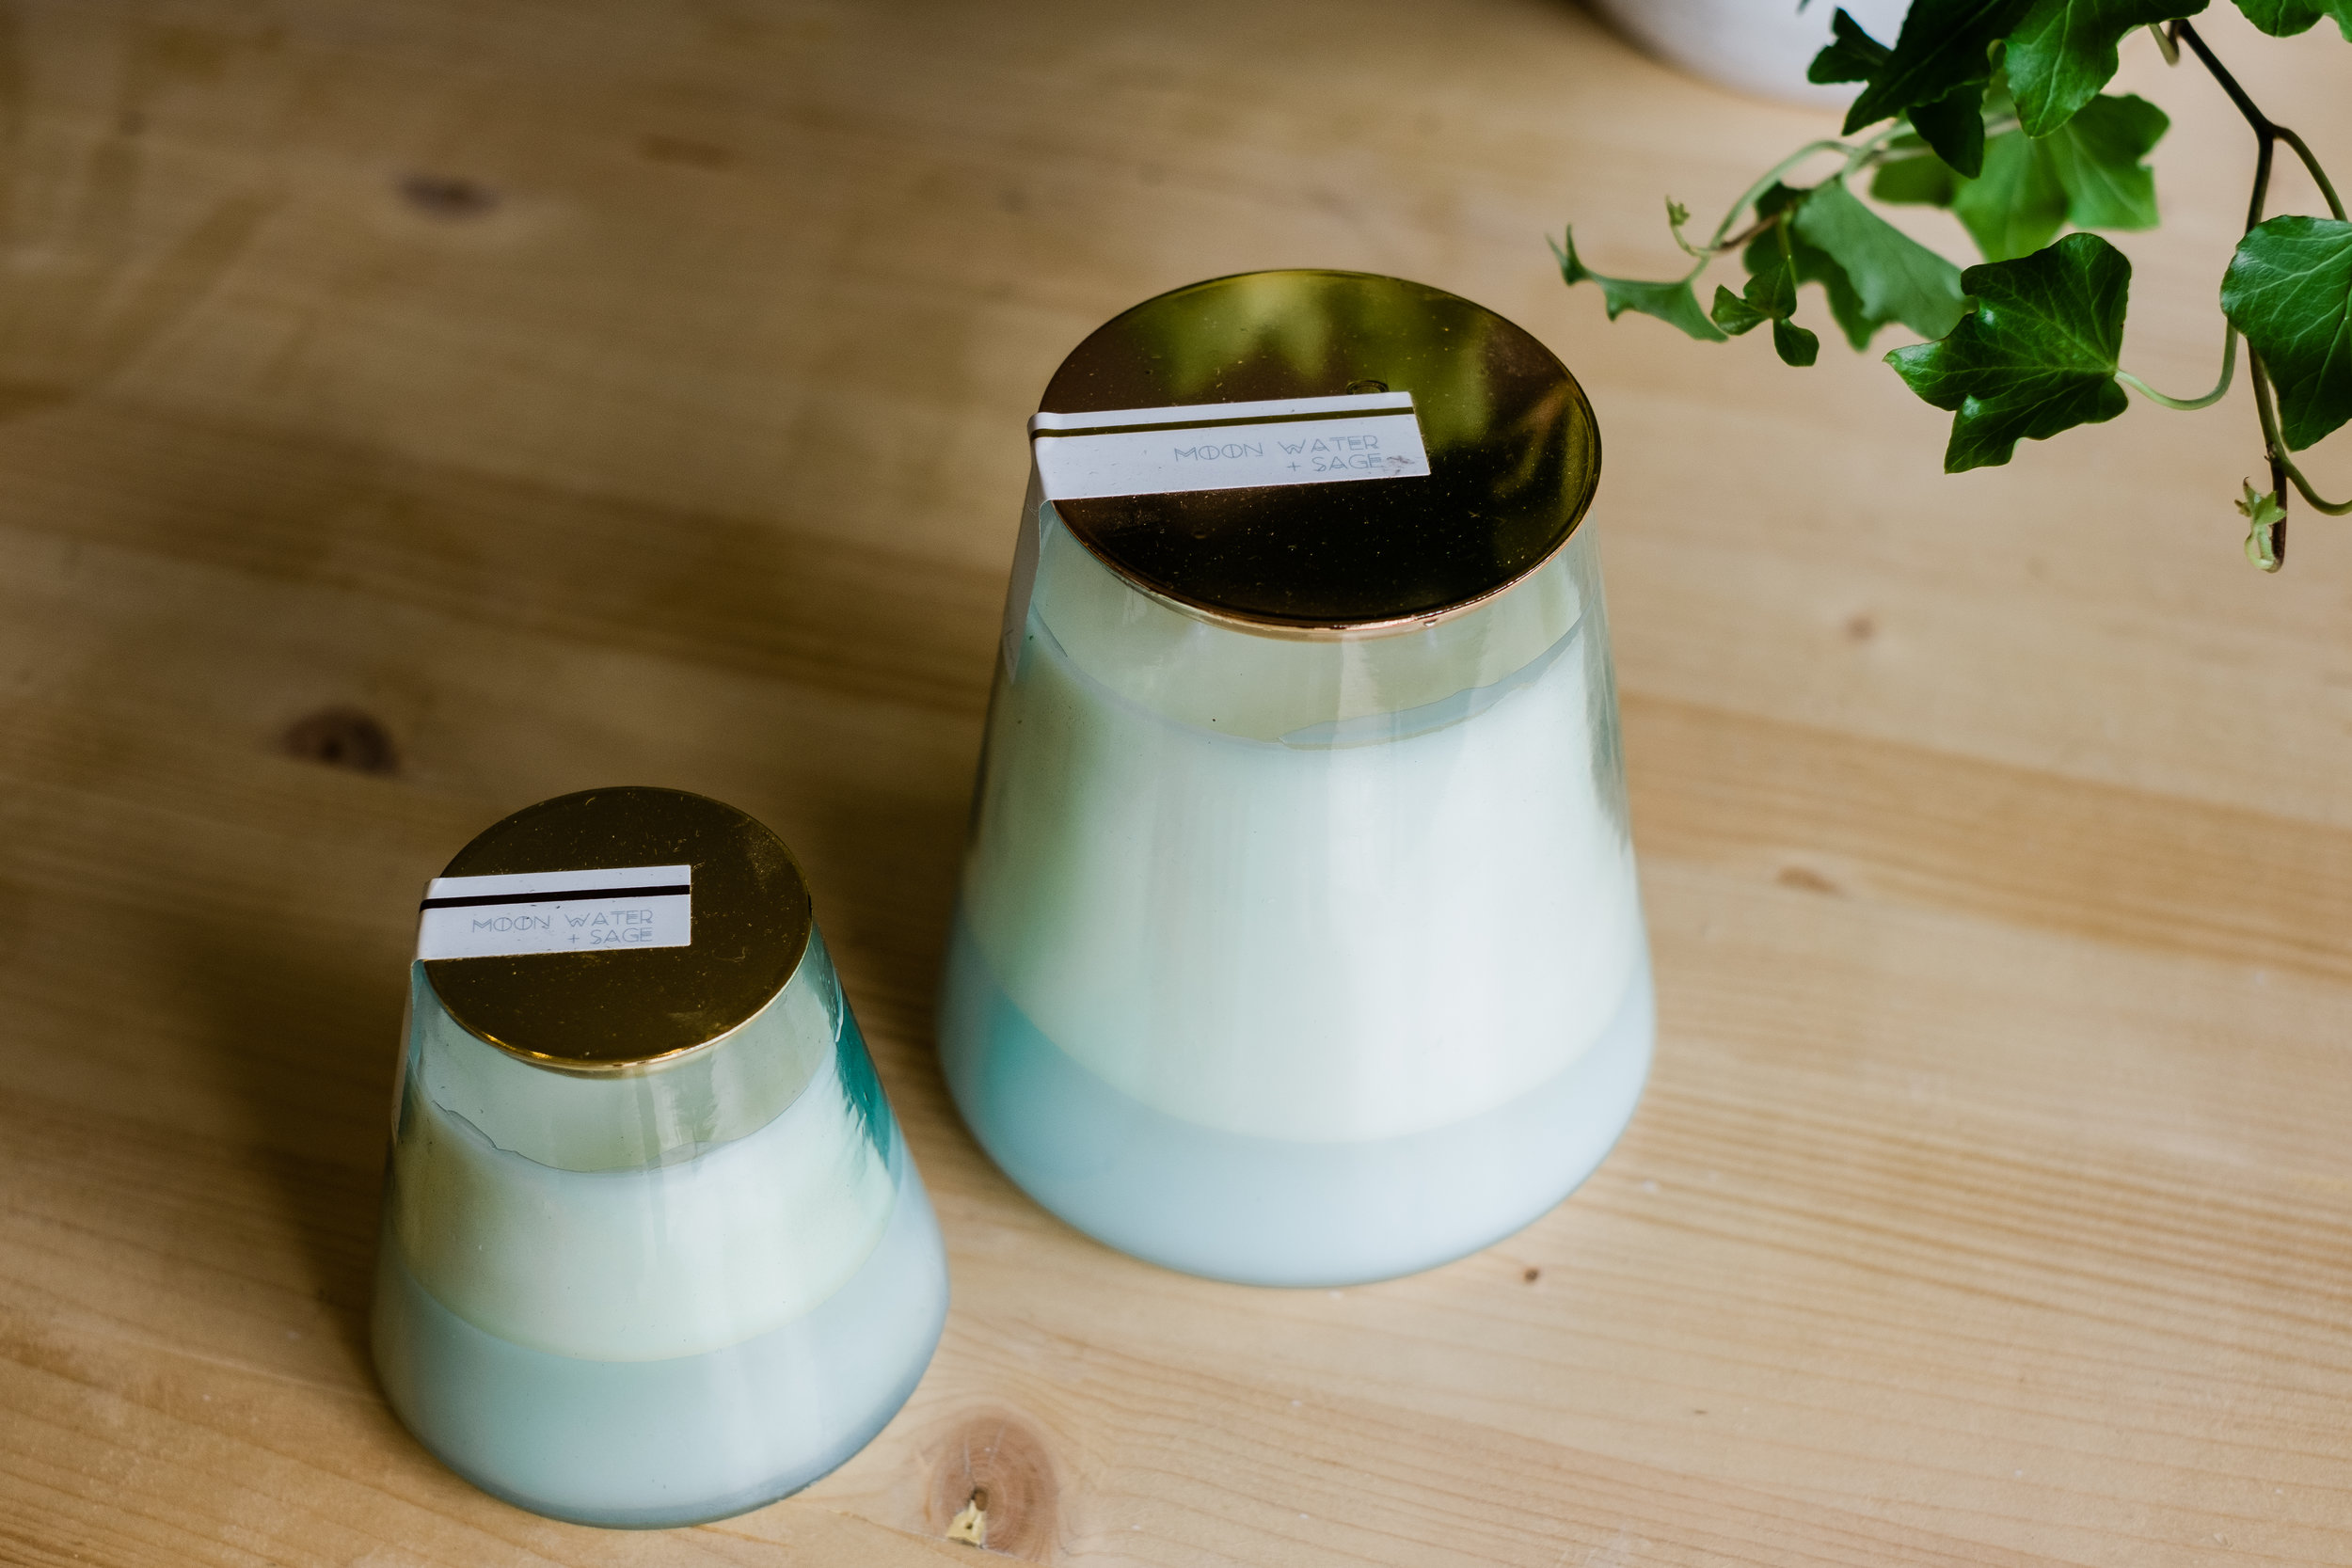 Paddywax Candles - $18 | $28